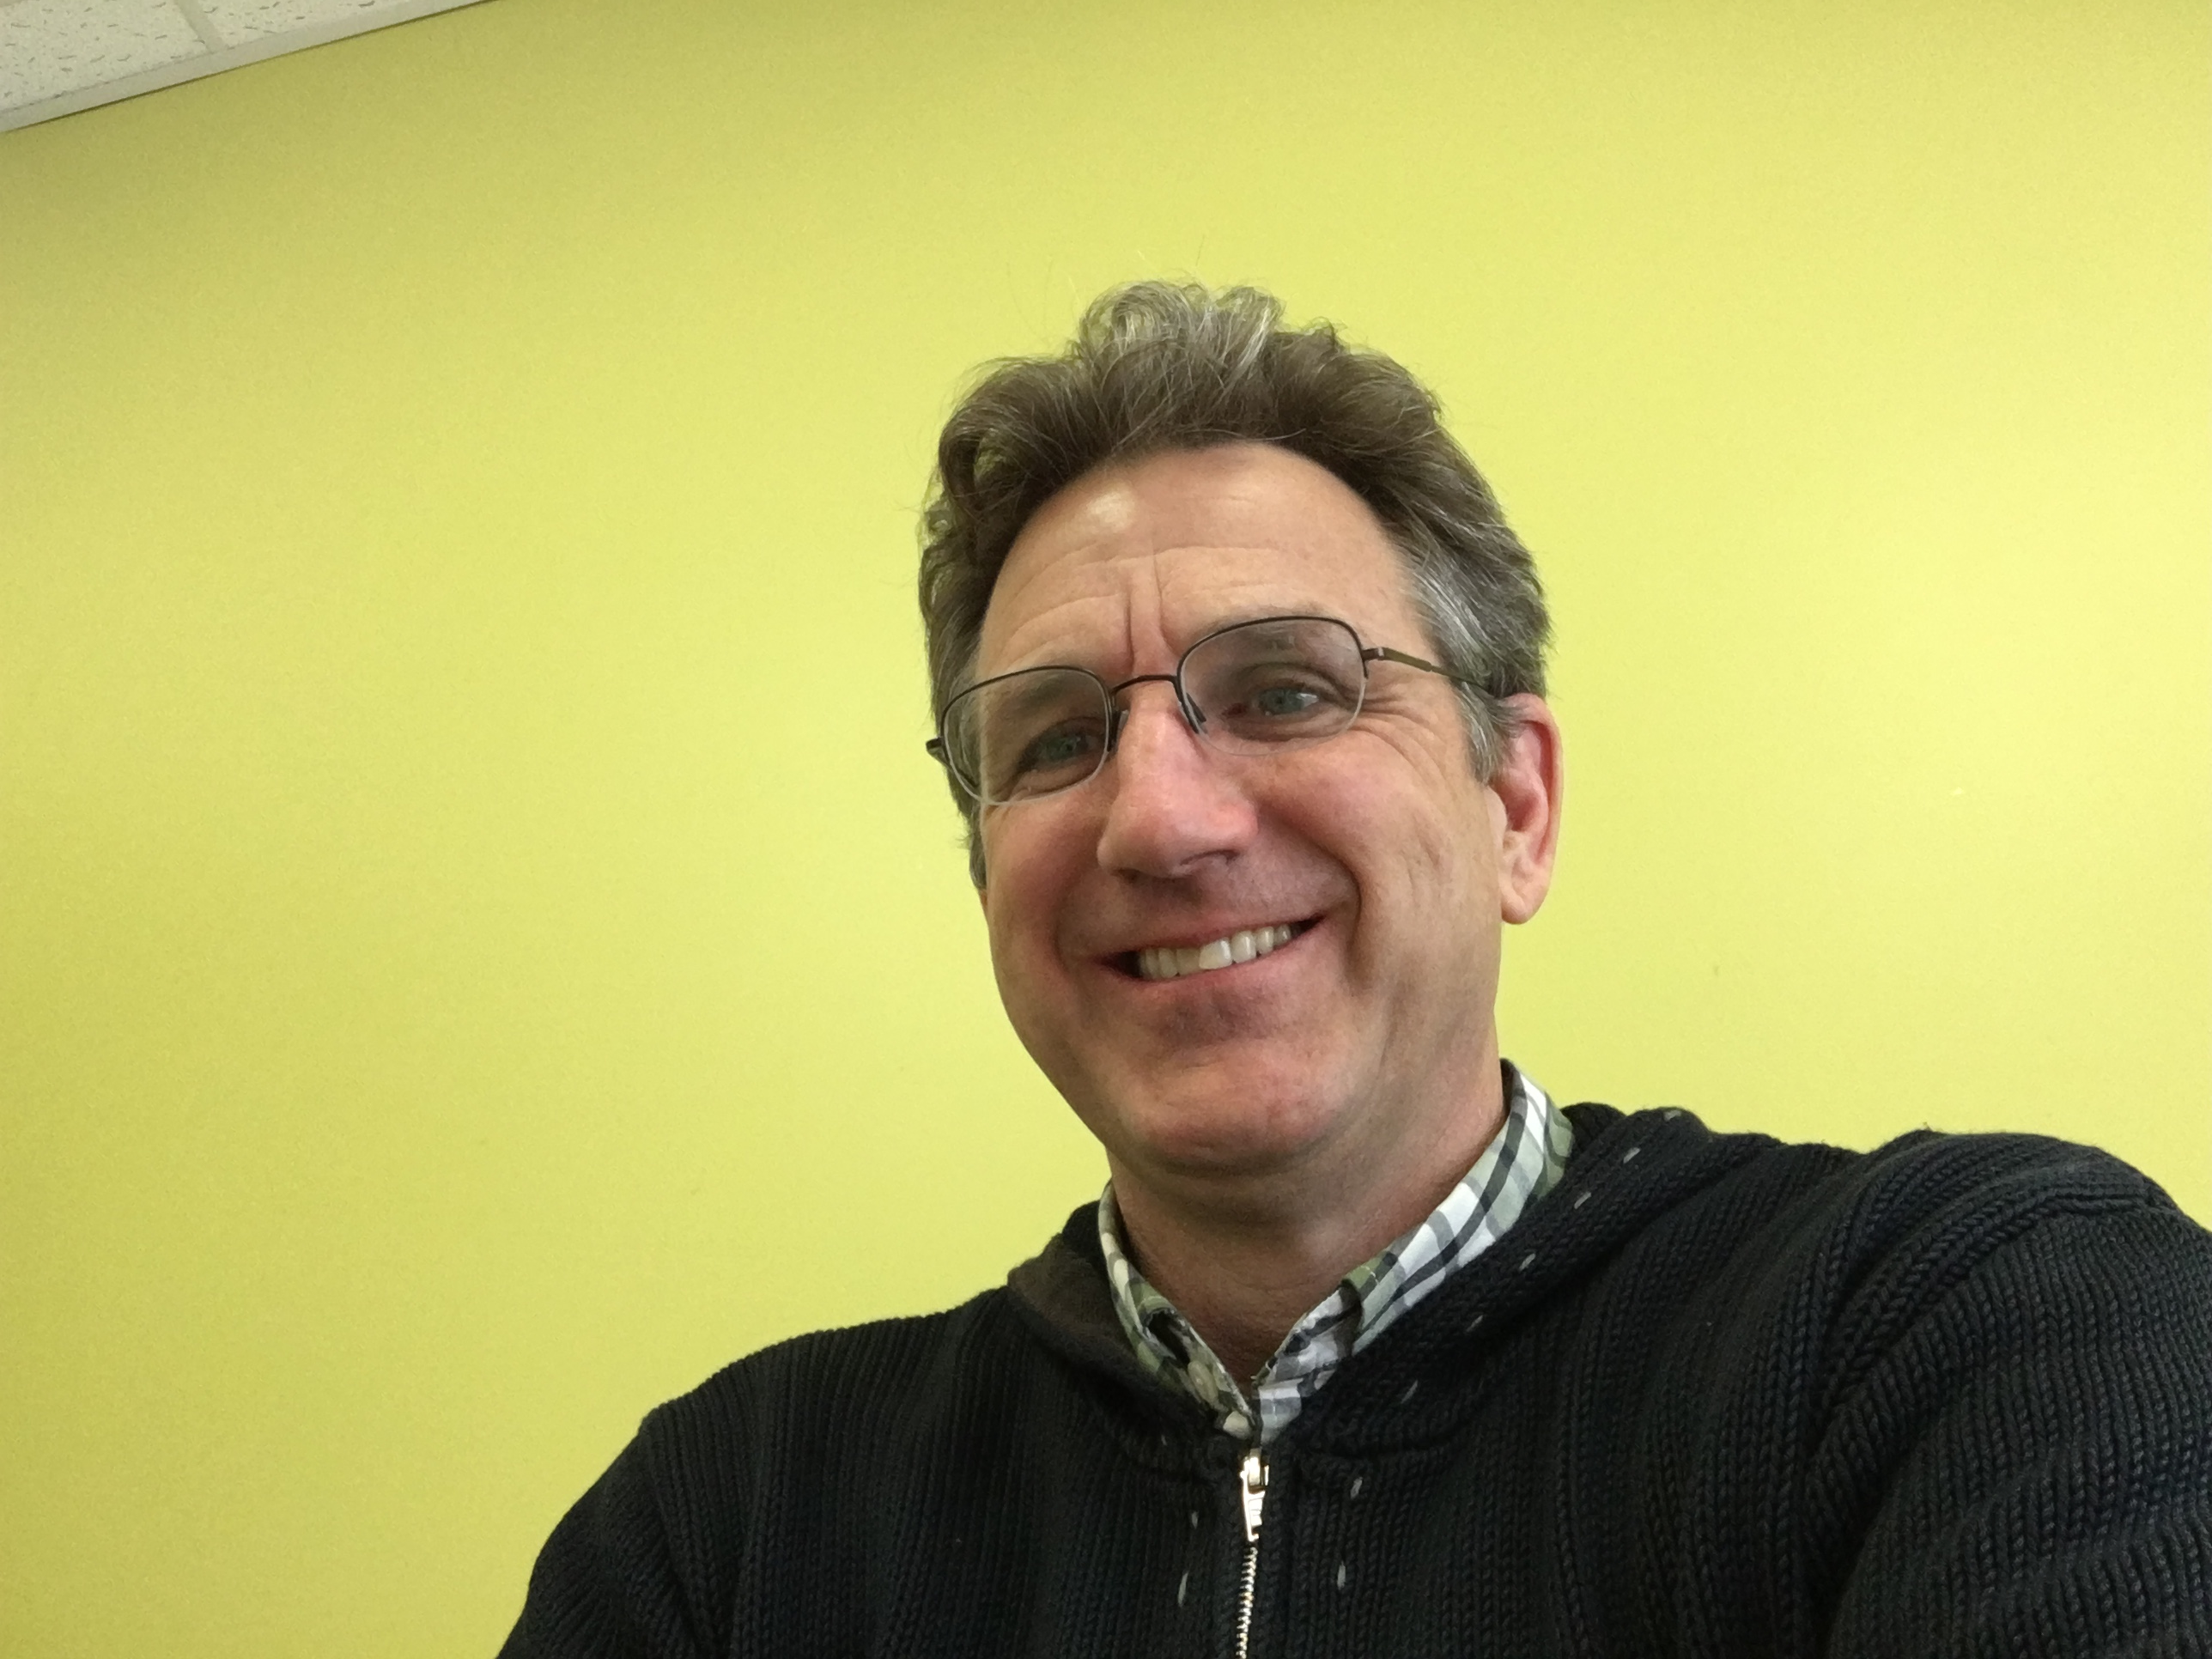 Our editor in chief, Blaise Zerega, tries out the 9.7-inch iPad Pro's FaceTime HD Camera.